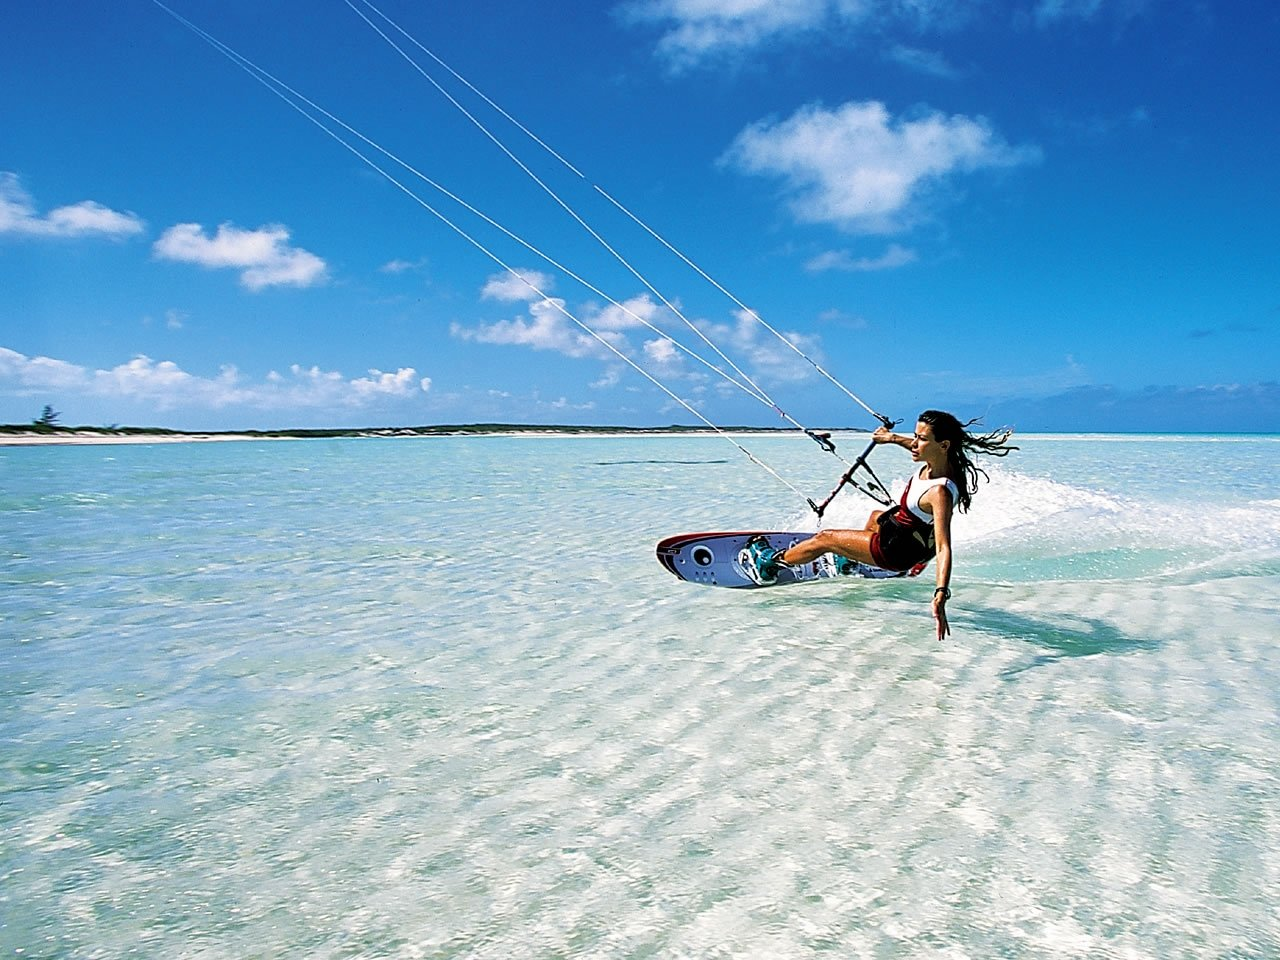 Best kite surfing period : SEPTEMBER-JUNE